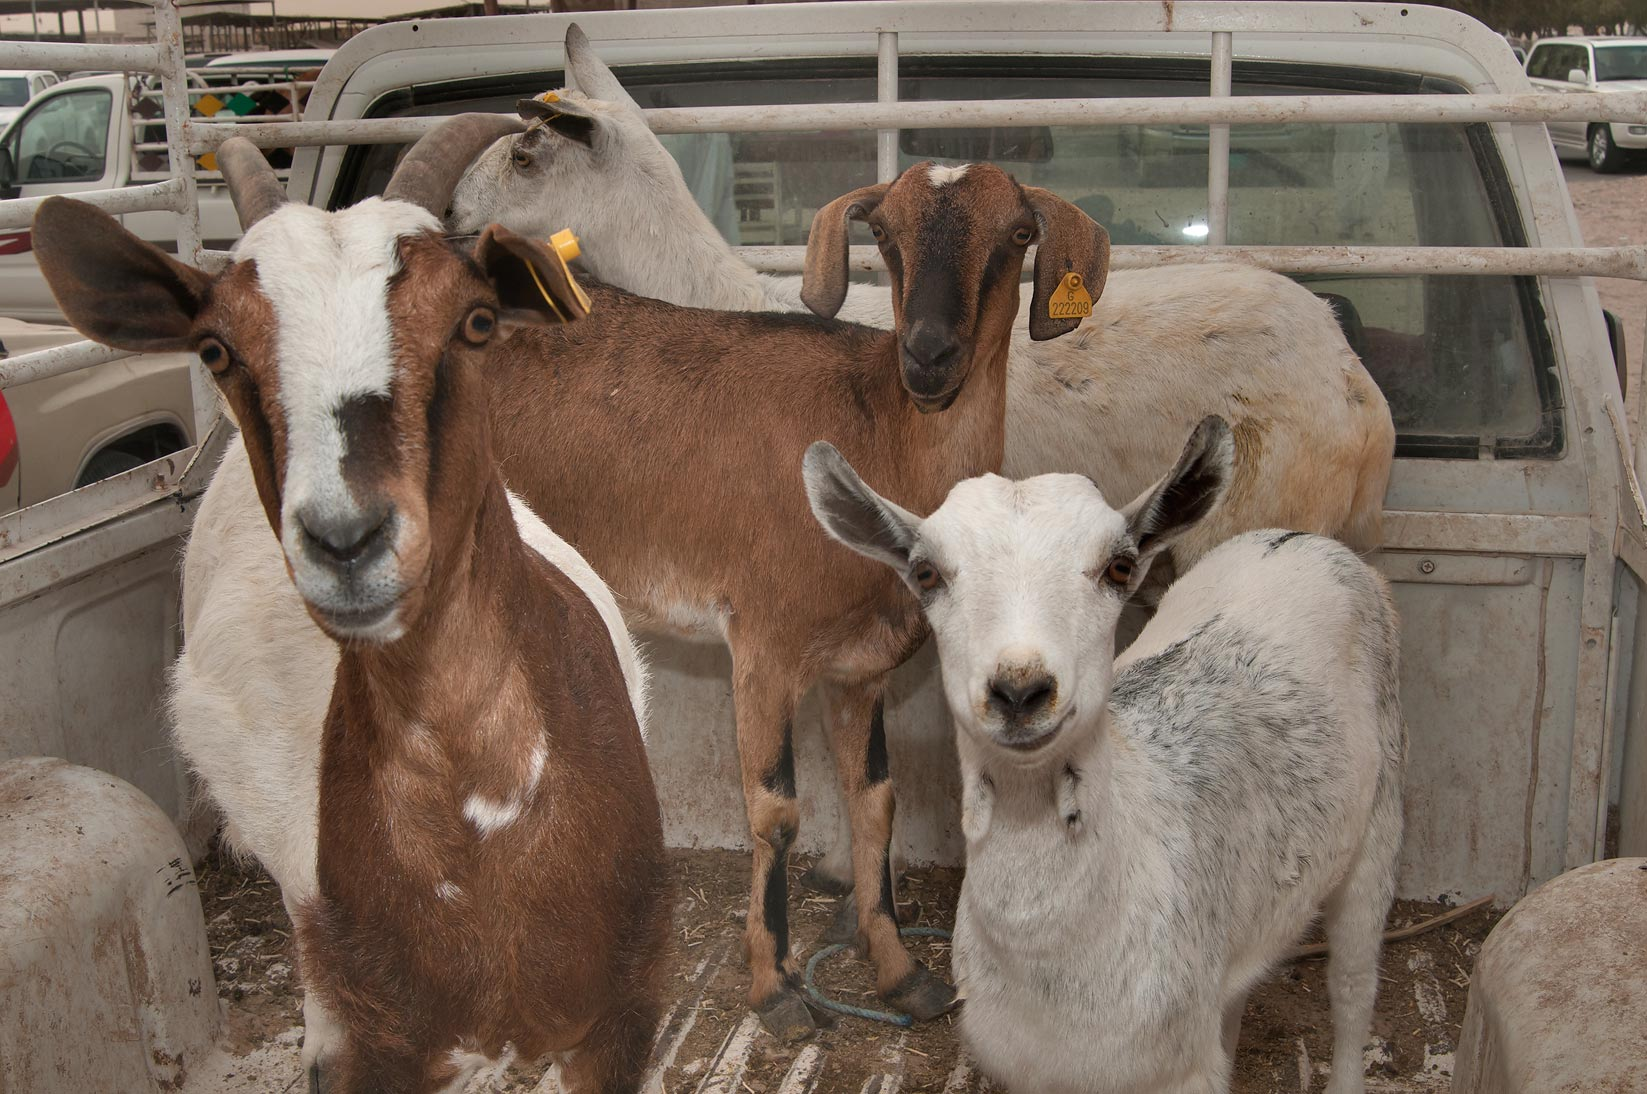 Several goats in a truck in Sheep Market, Wholesale Markets area. Doha, Qatar